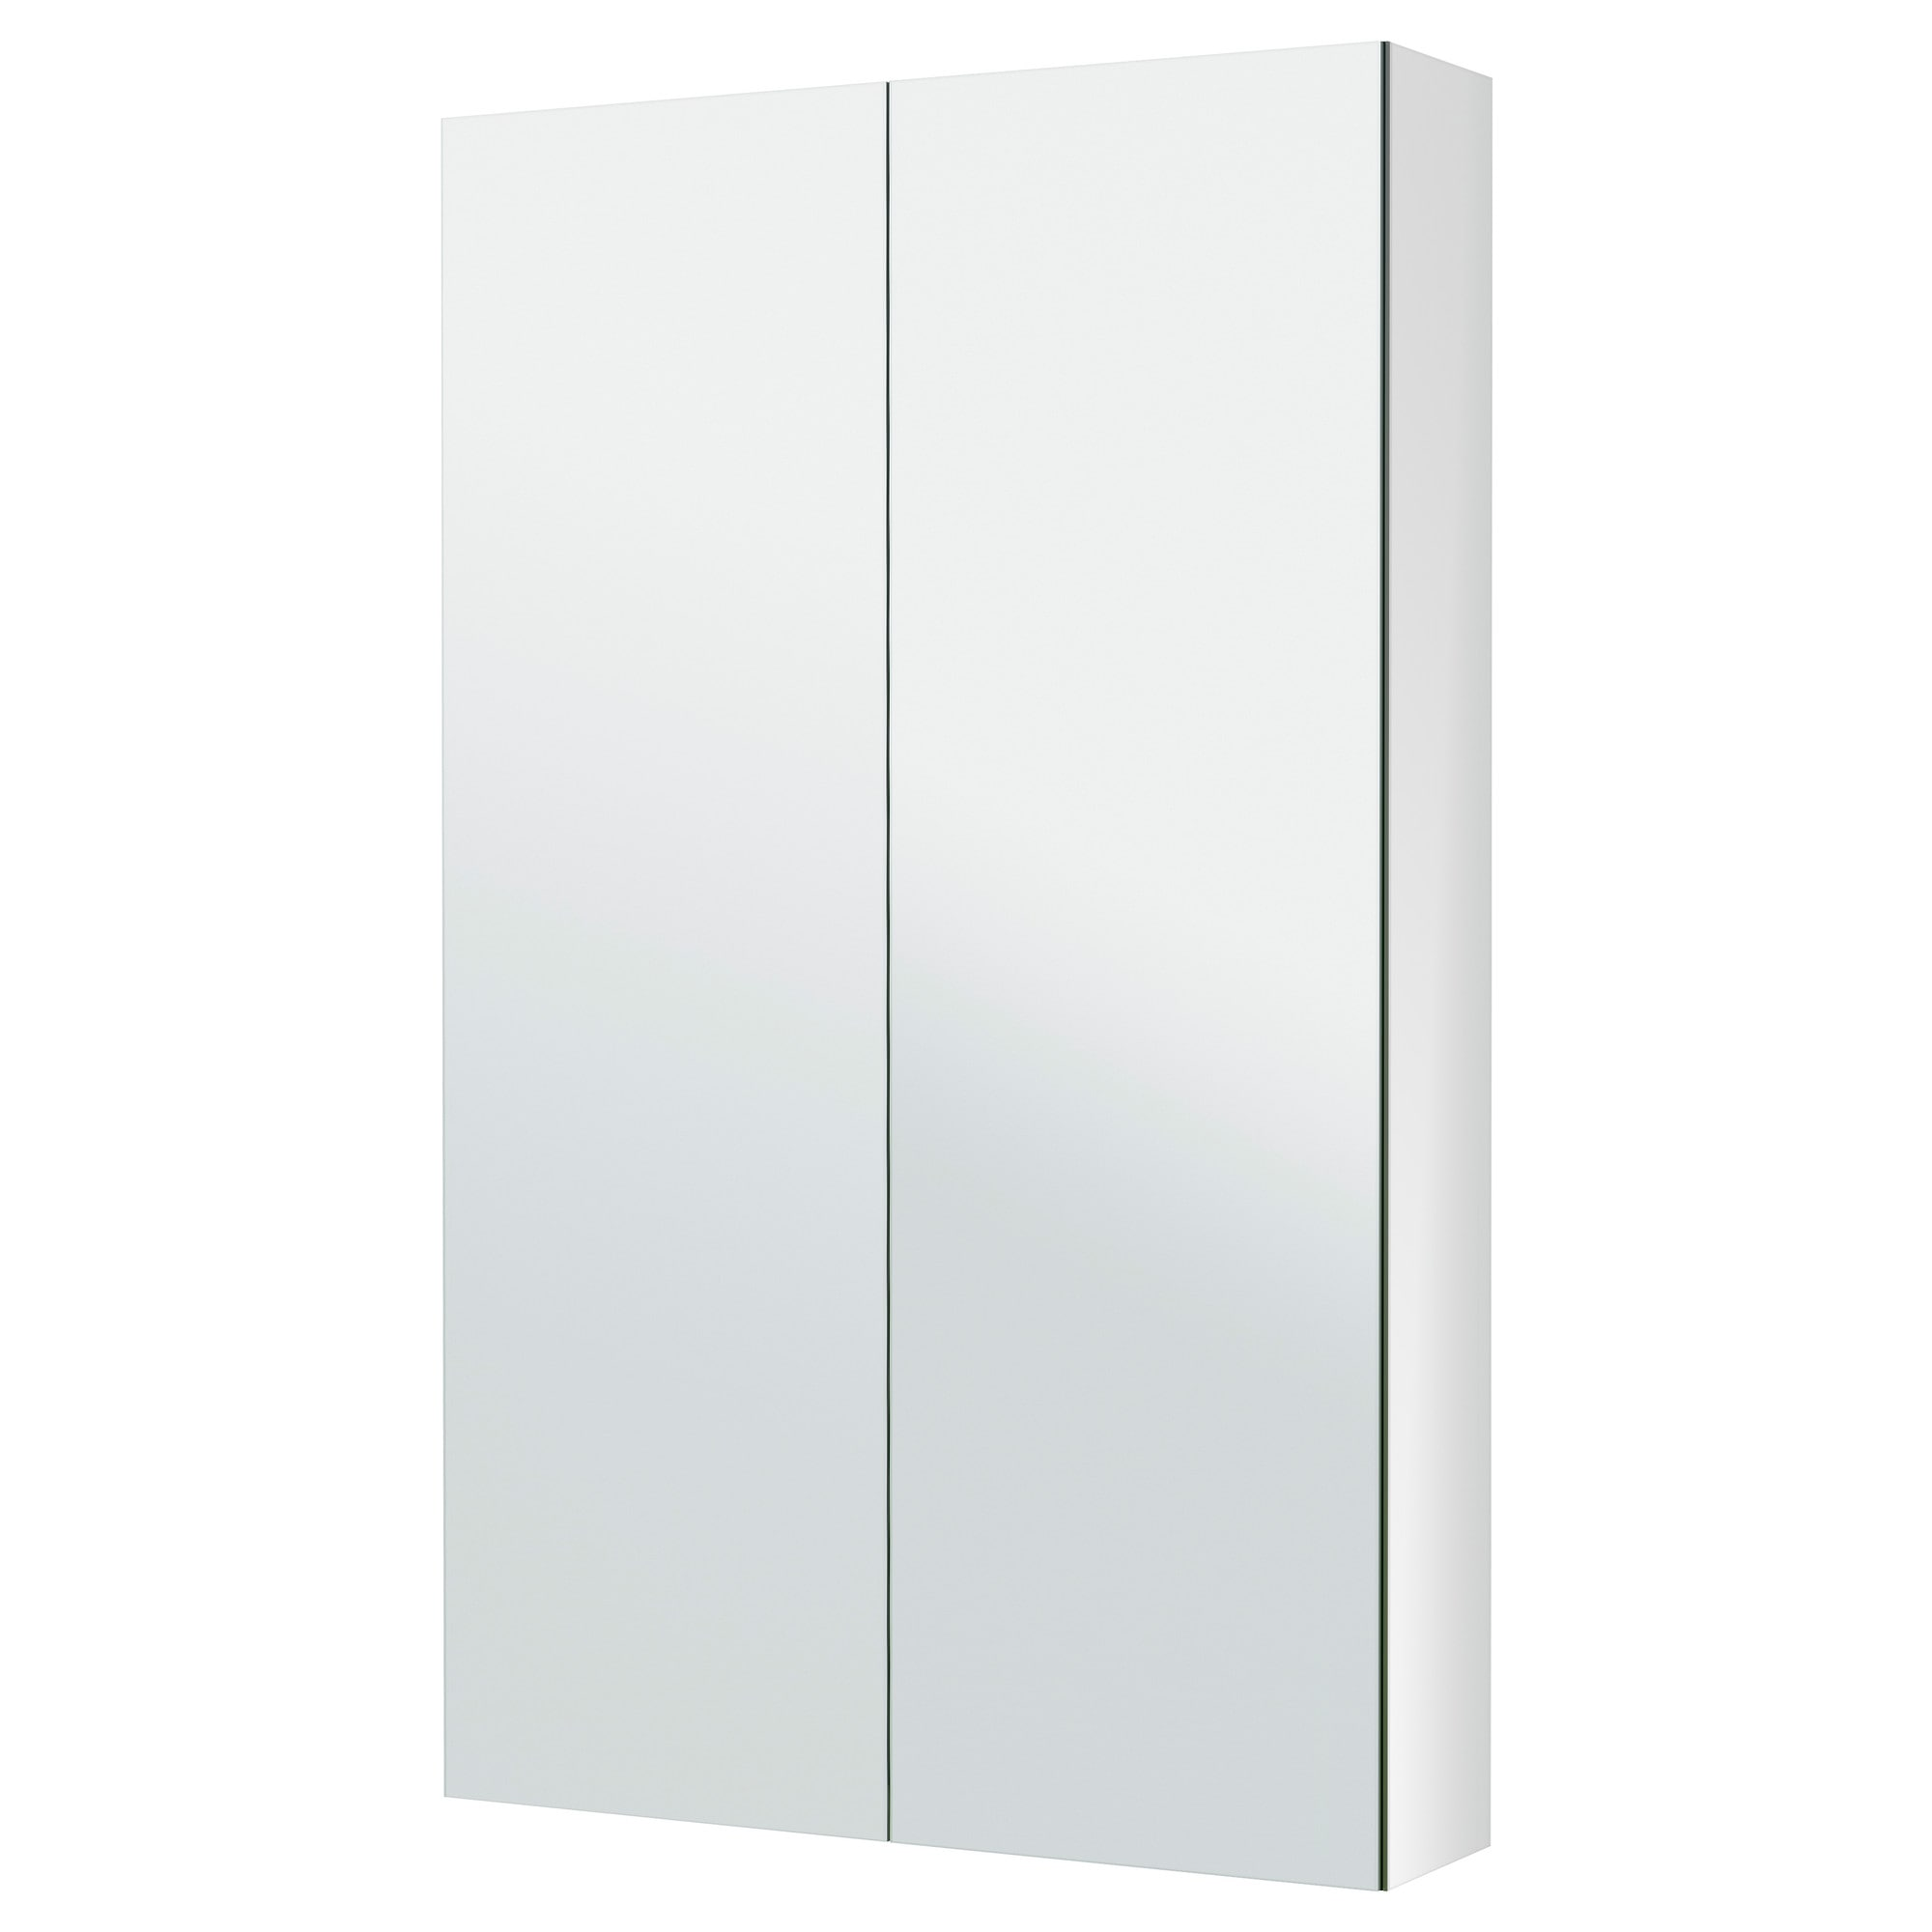 Bathroom wall cabinets ikea - Bathroom Wall Cabinets Ikea 0